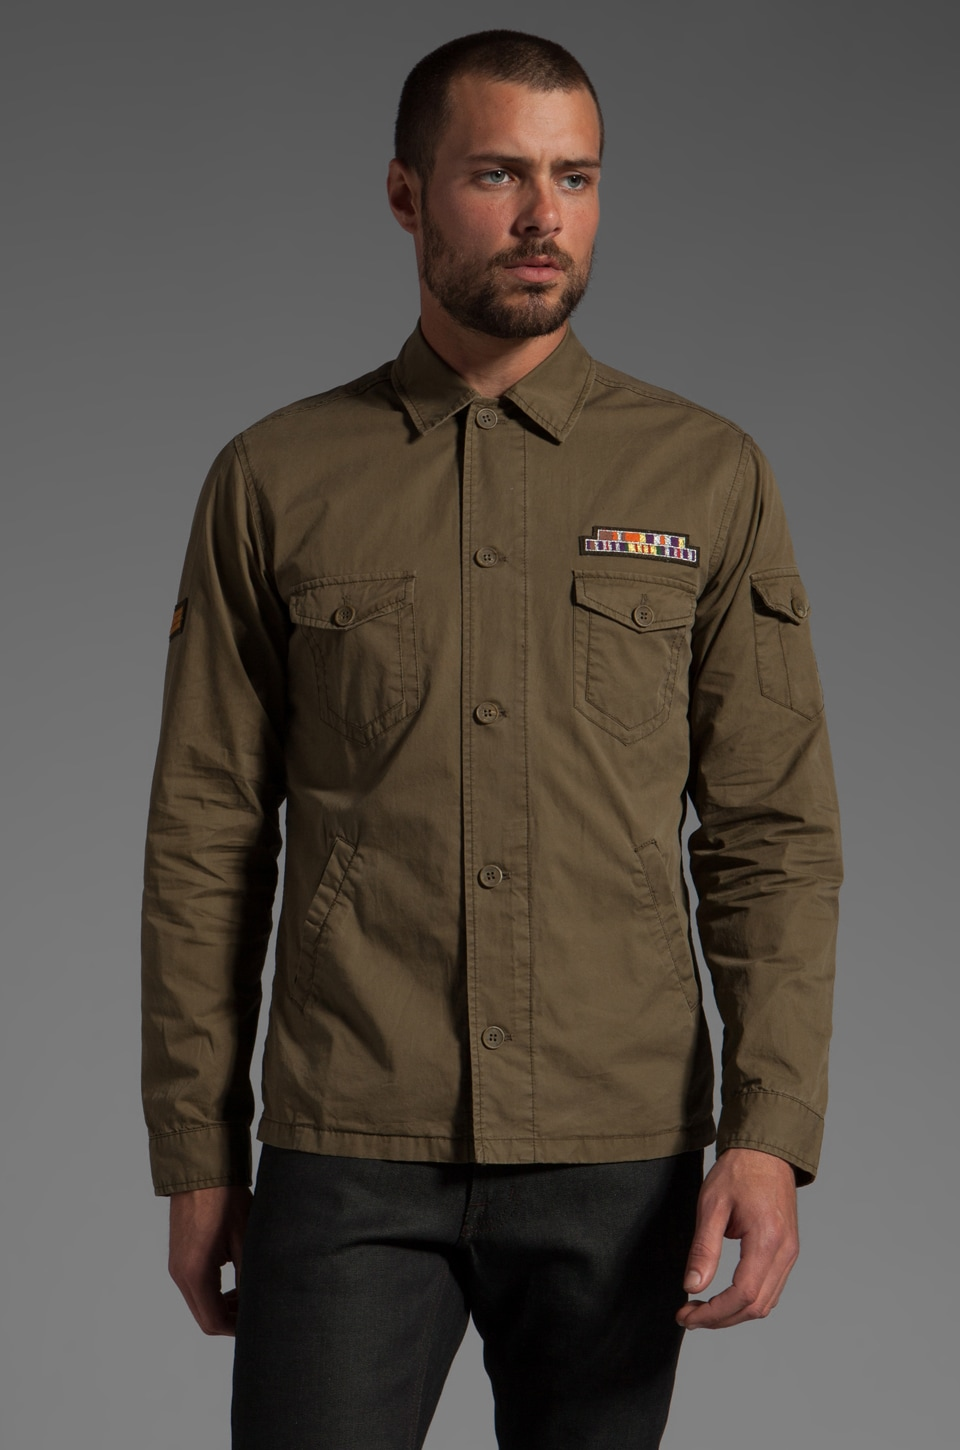 Shades of Grey by Micah Cohen Military Overshirt in Olive Poplin